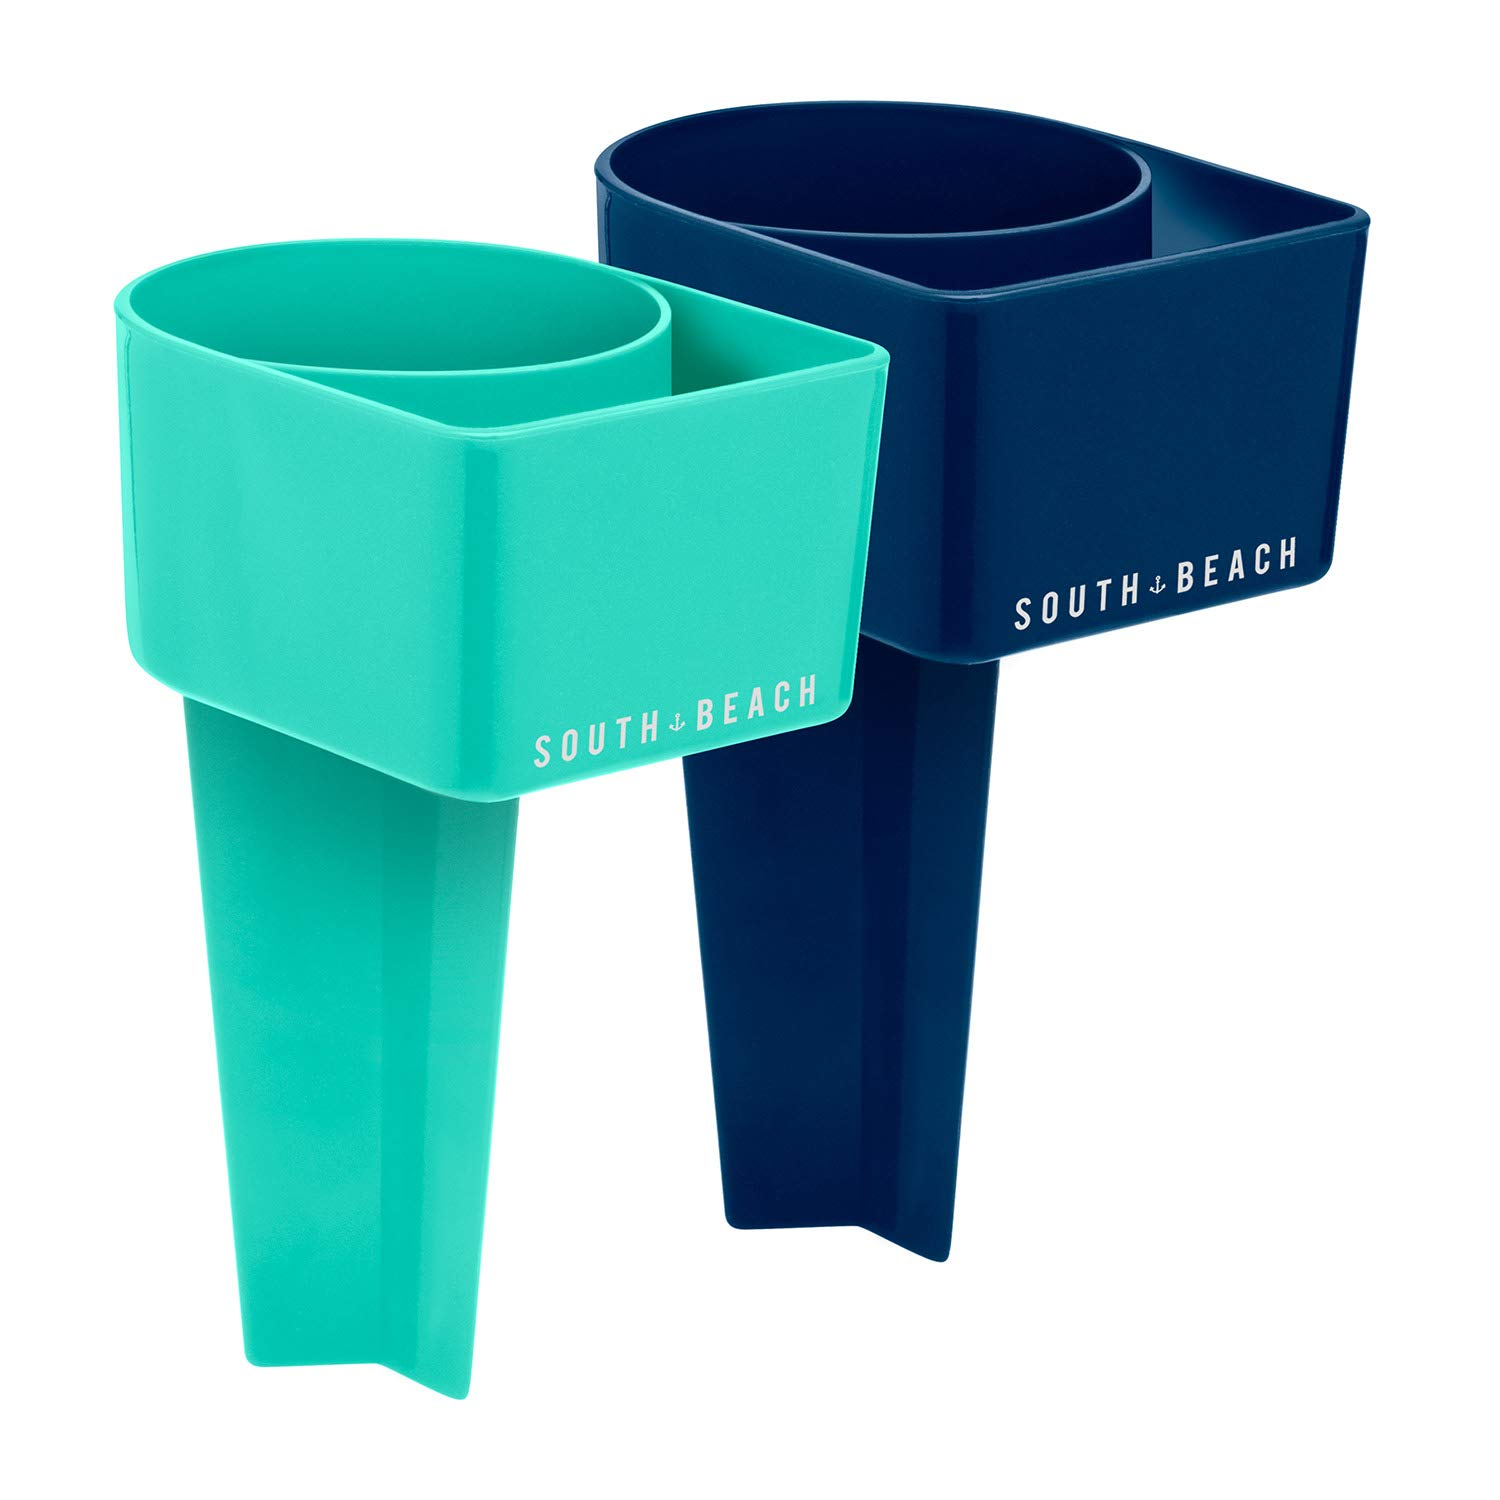 SOUTH BEACH Stick in Sand Drink Holders - Set of 2 - Perfect for The Beach - Includes Slot for Your Phone (Teal/Navy)